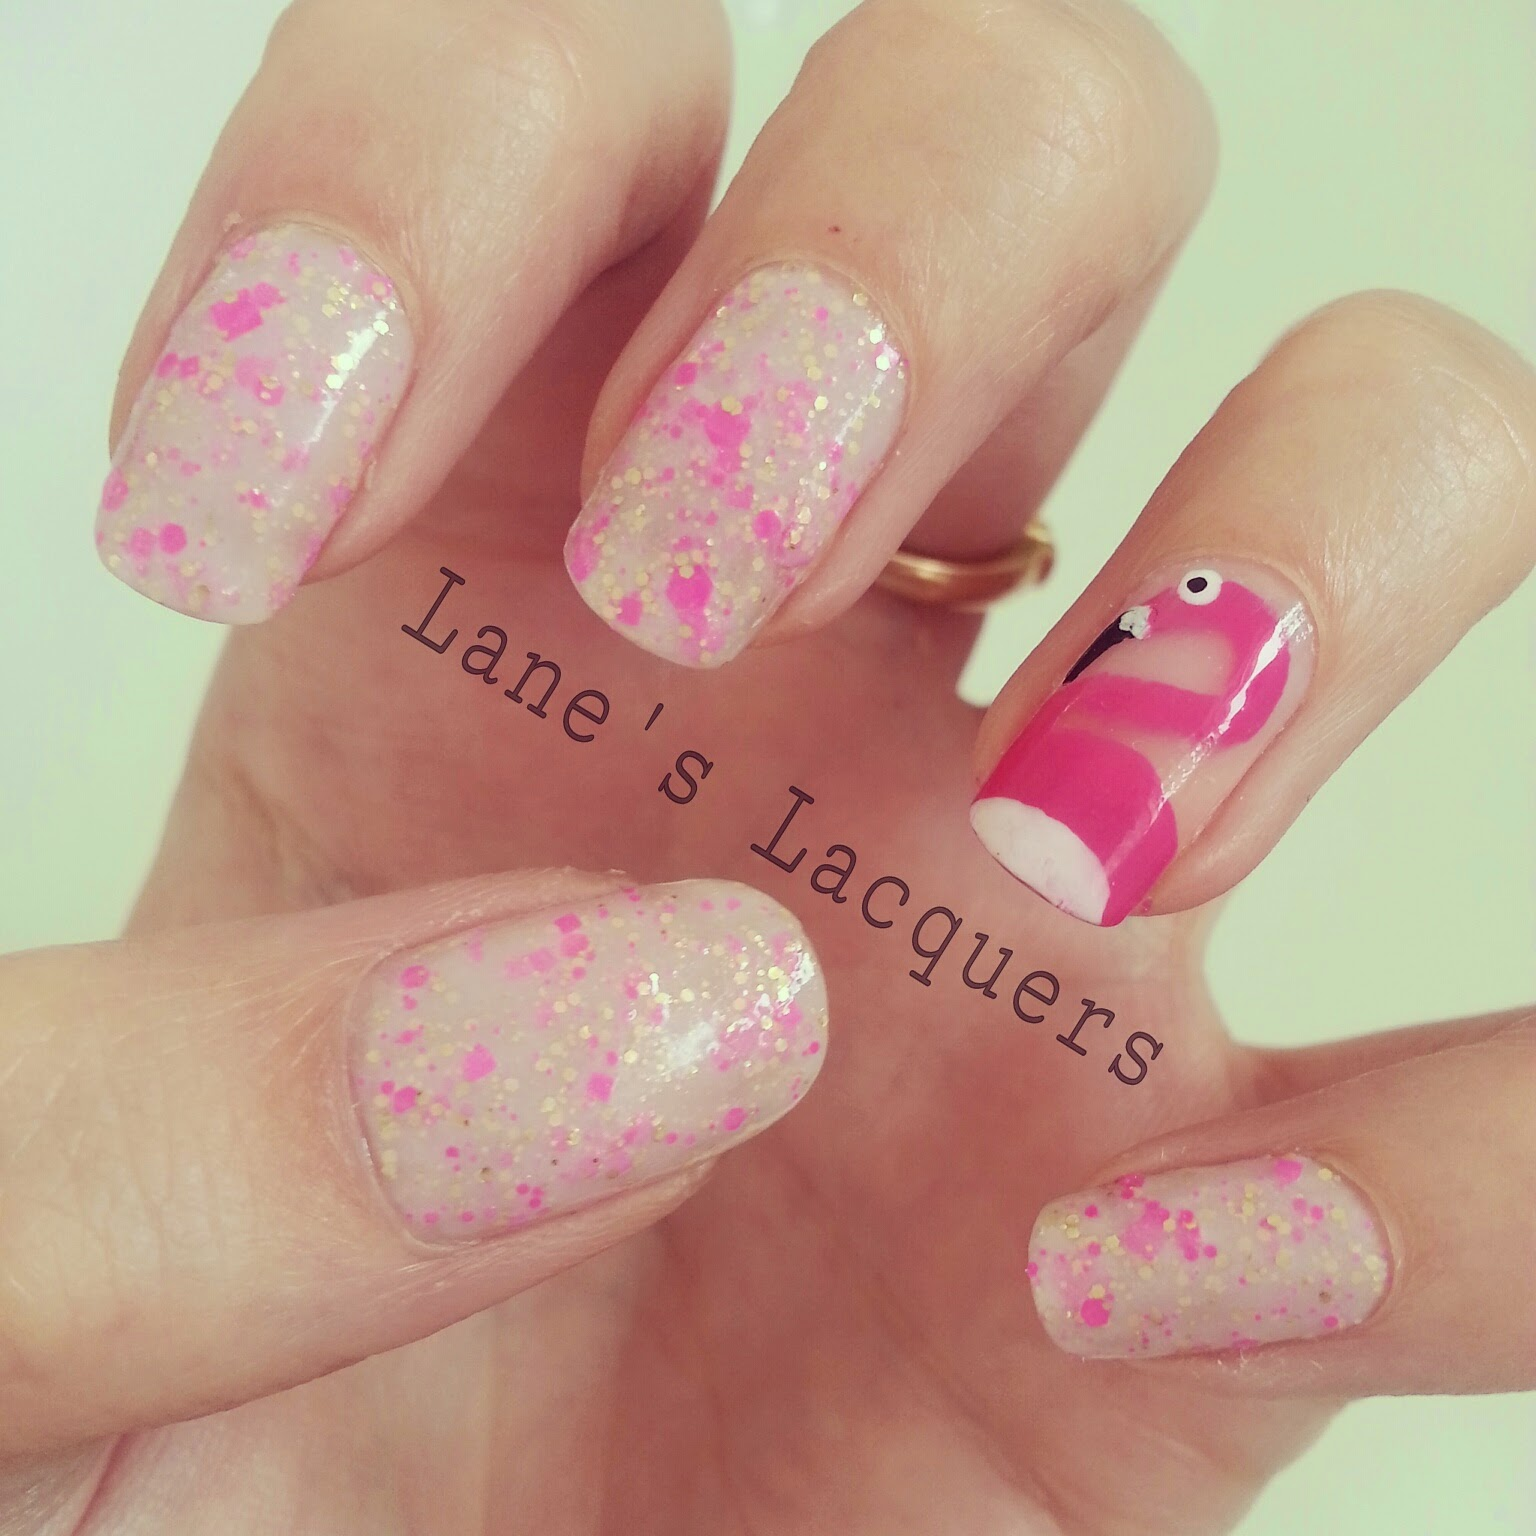 hare-polish-flight-of-the-flamingos-nail-art (1)